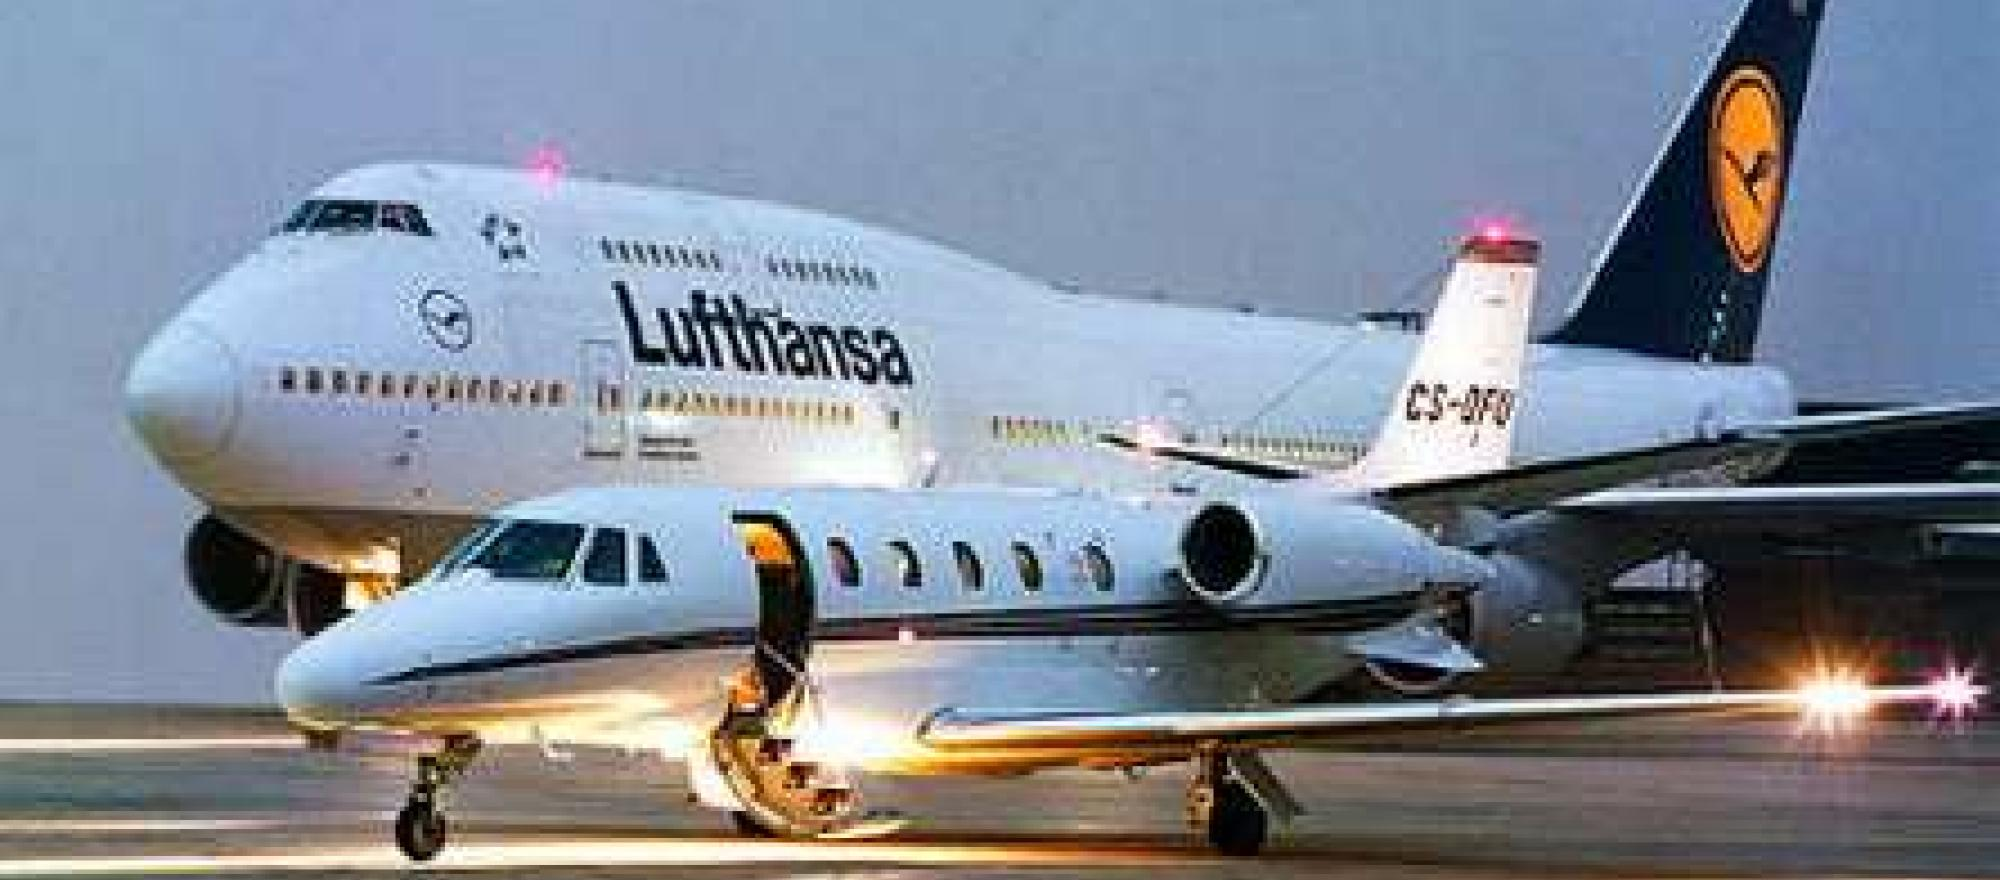 Lufthansa Private Jet Coming To North America